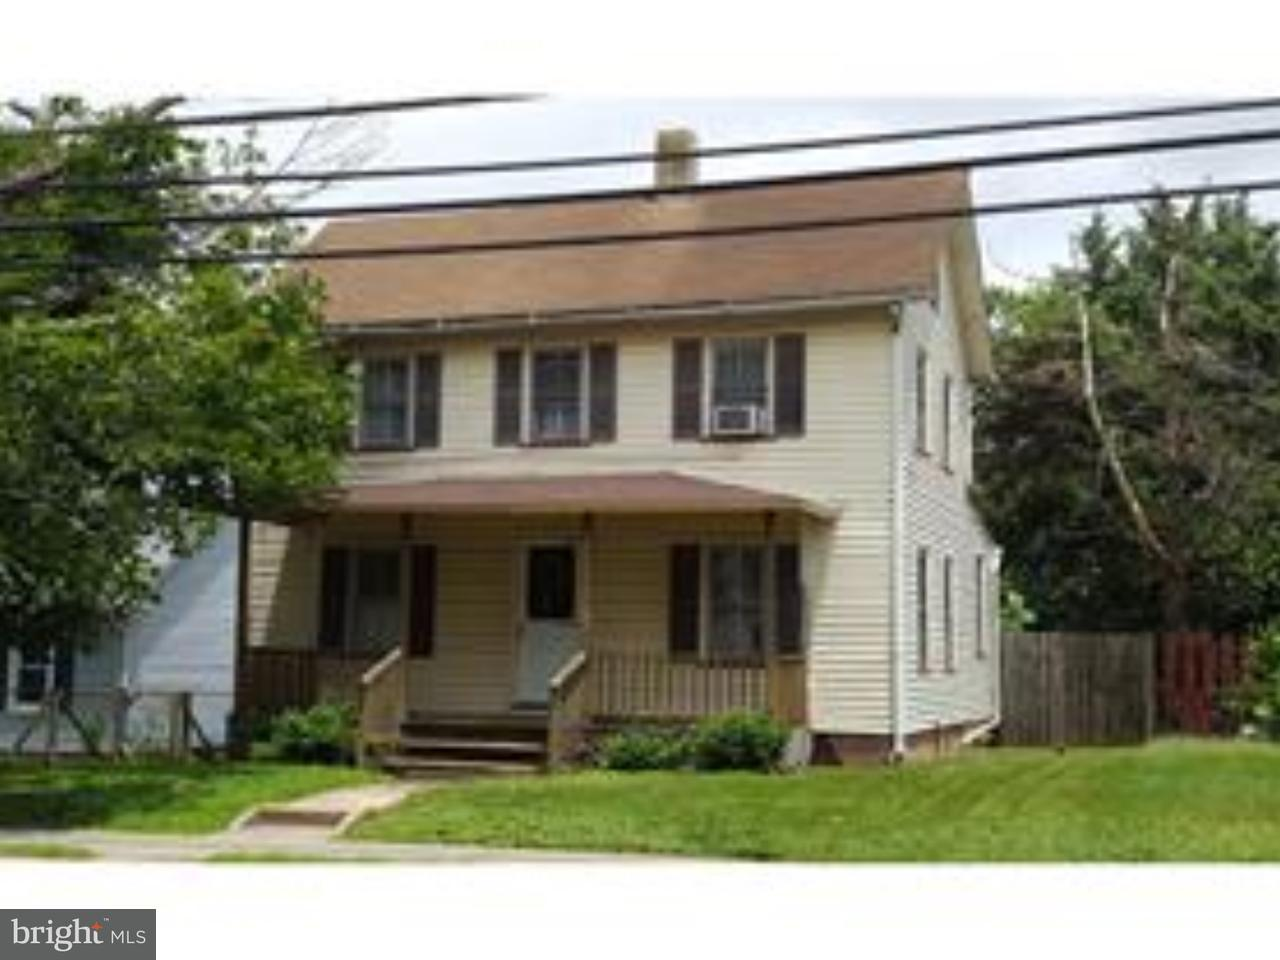 Single Family Home for Sale at 927 MAIN Street Shiloh, New Jersey 08353 United States